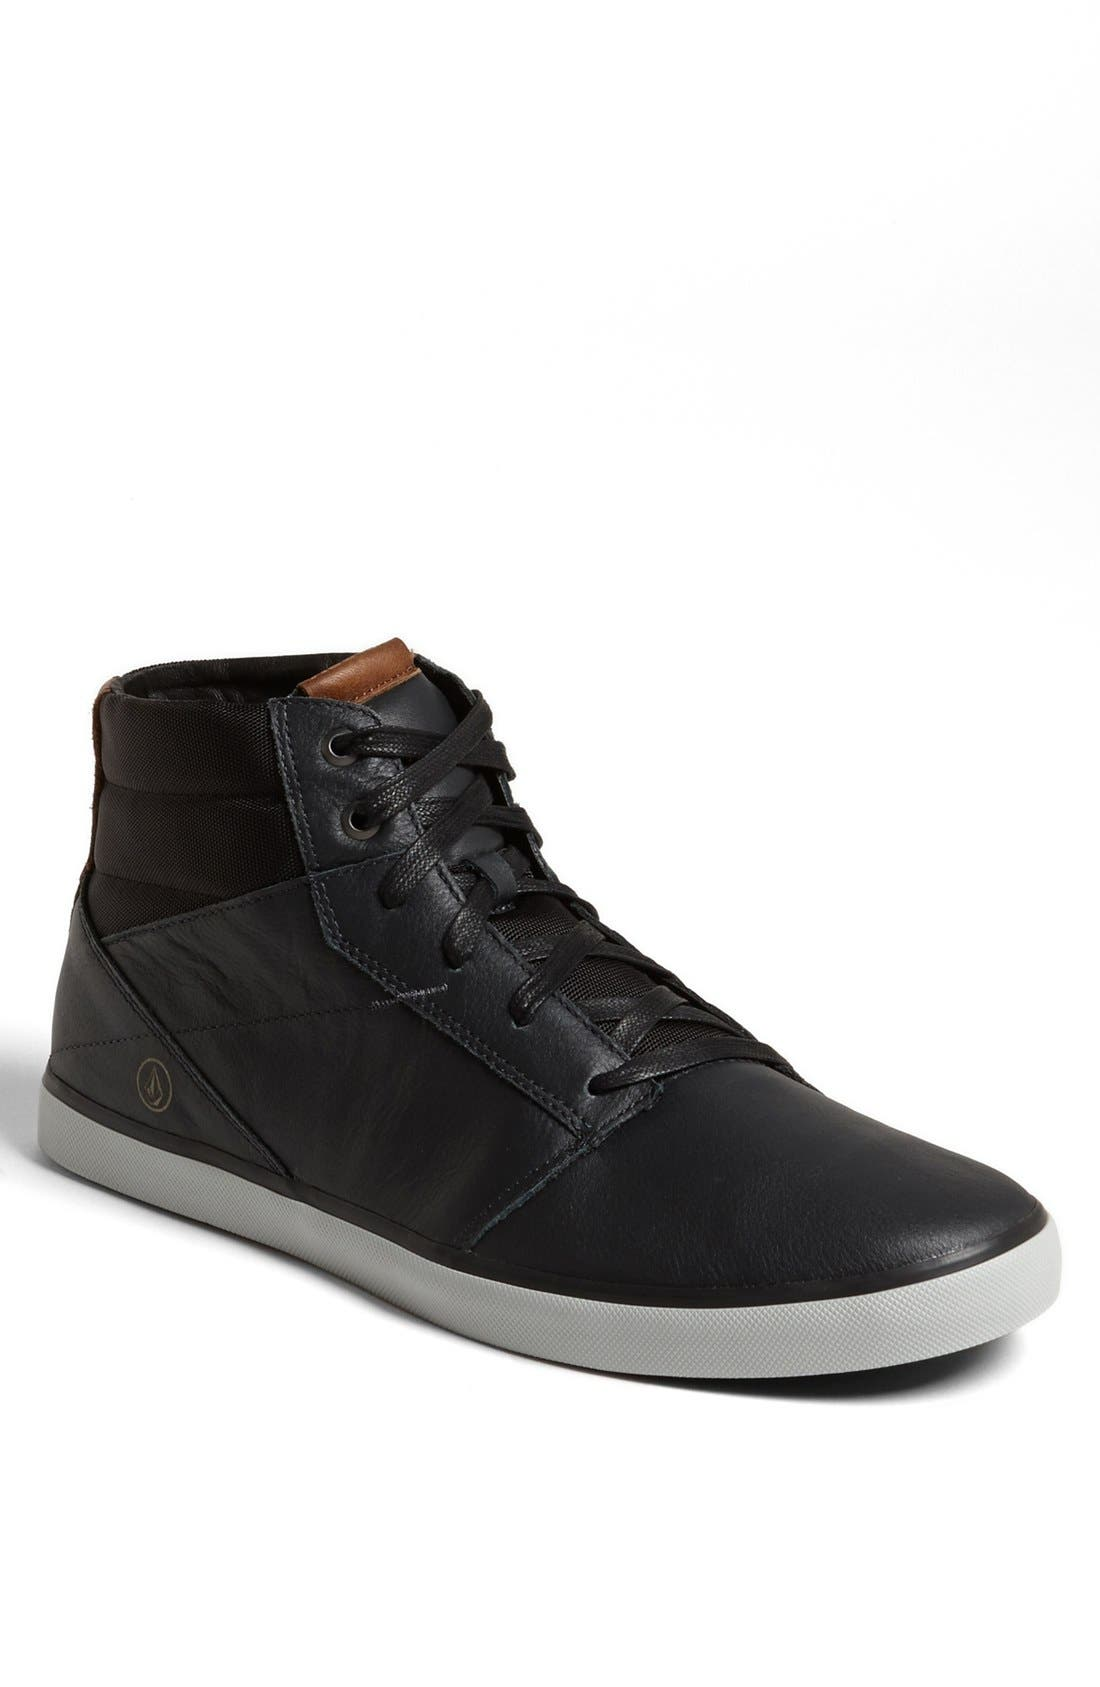 Alternate Image 1 Selected - Volcom 'Grimm' High Top Sneaker